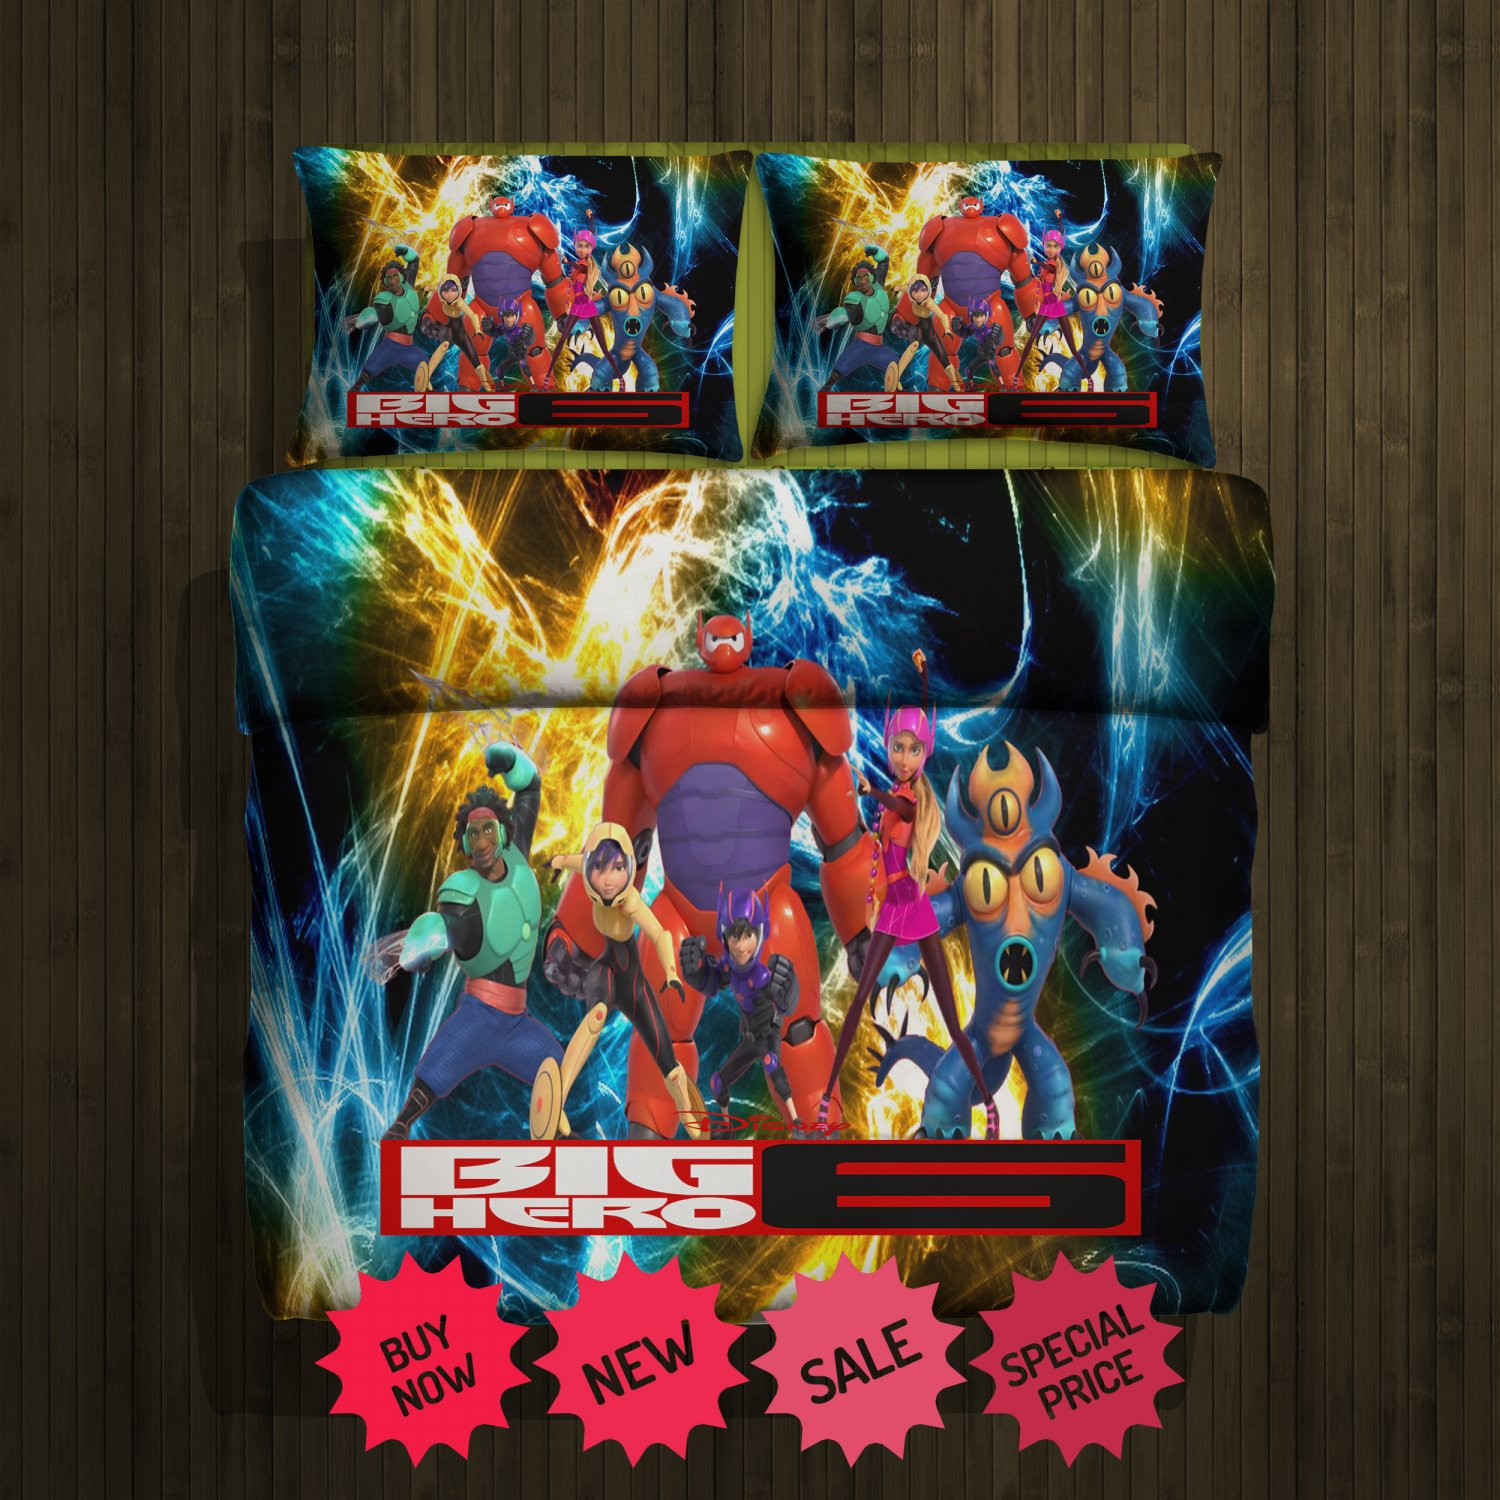 Big Hero 6 fleece blanket large & 2 pillow cover 81188923,81188925(2)